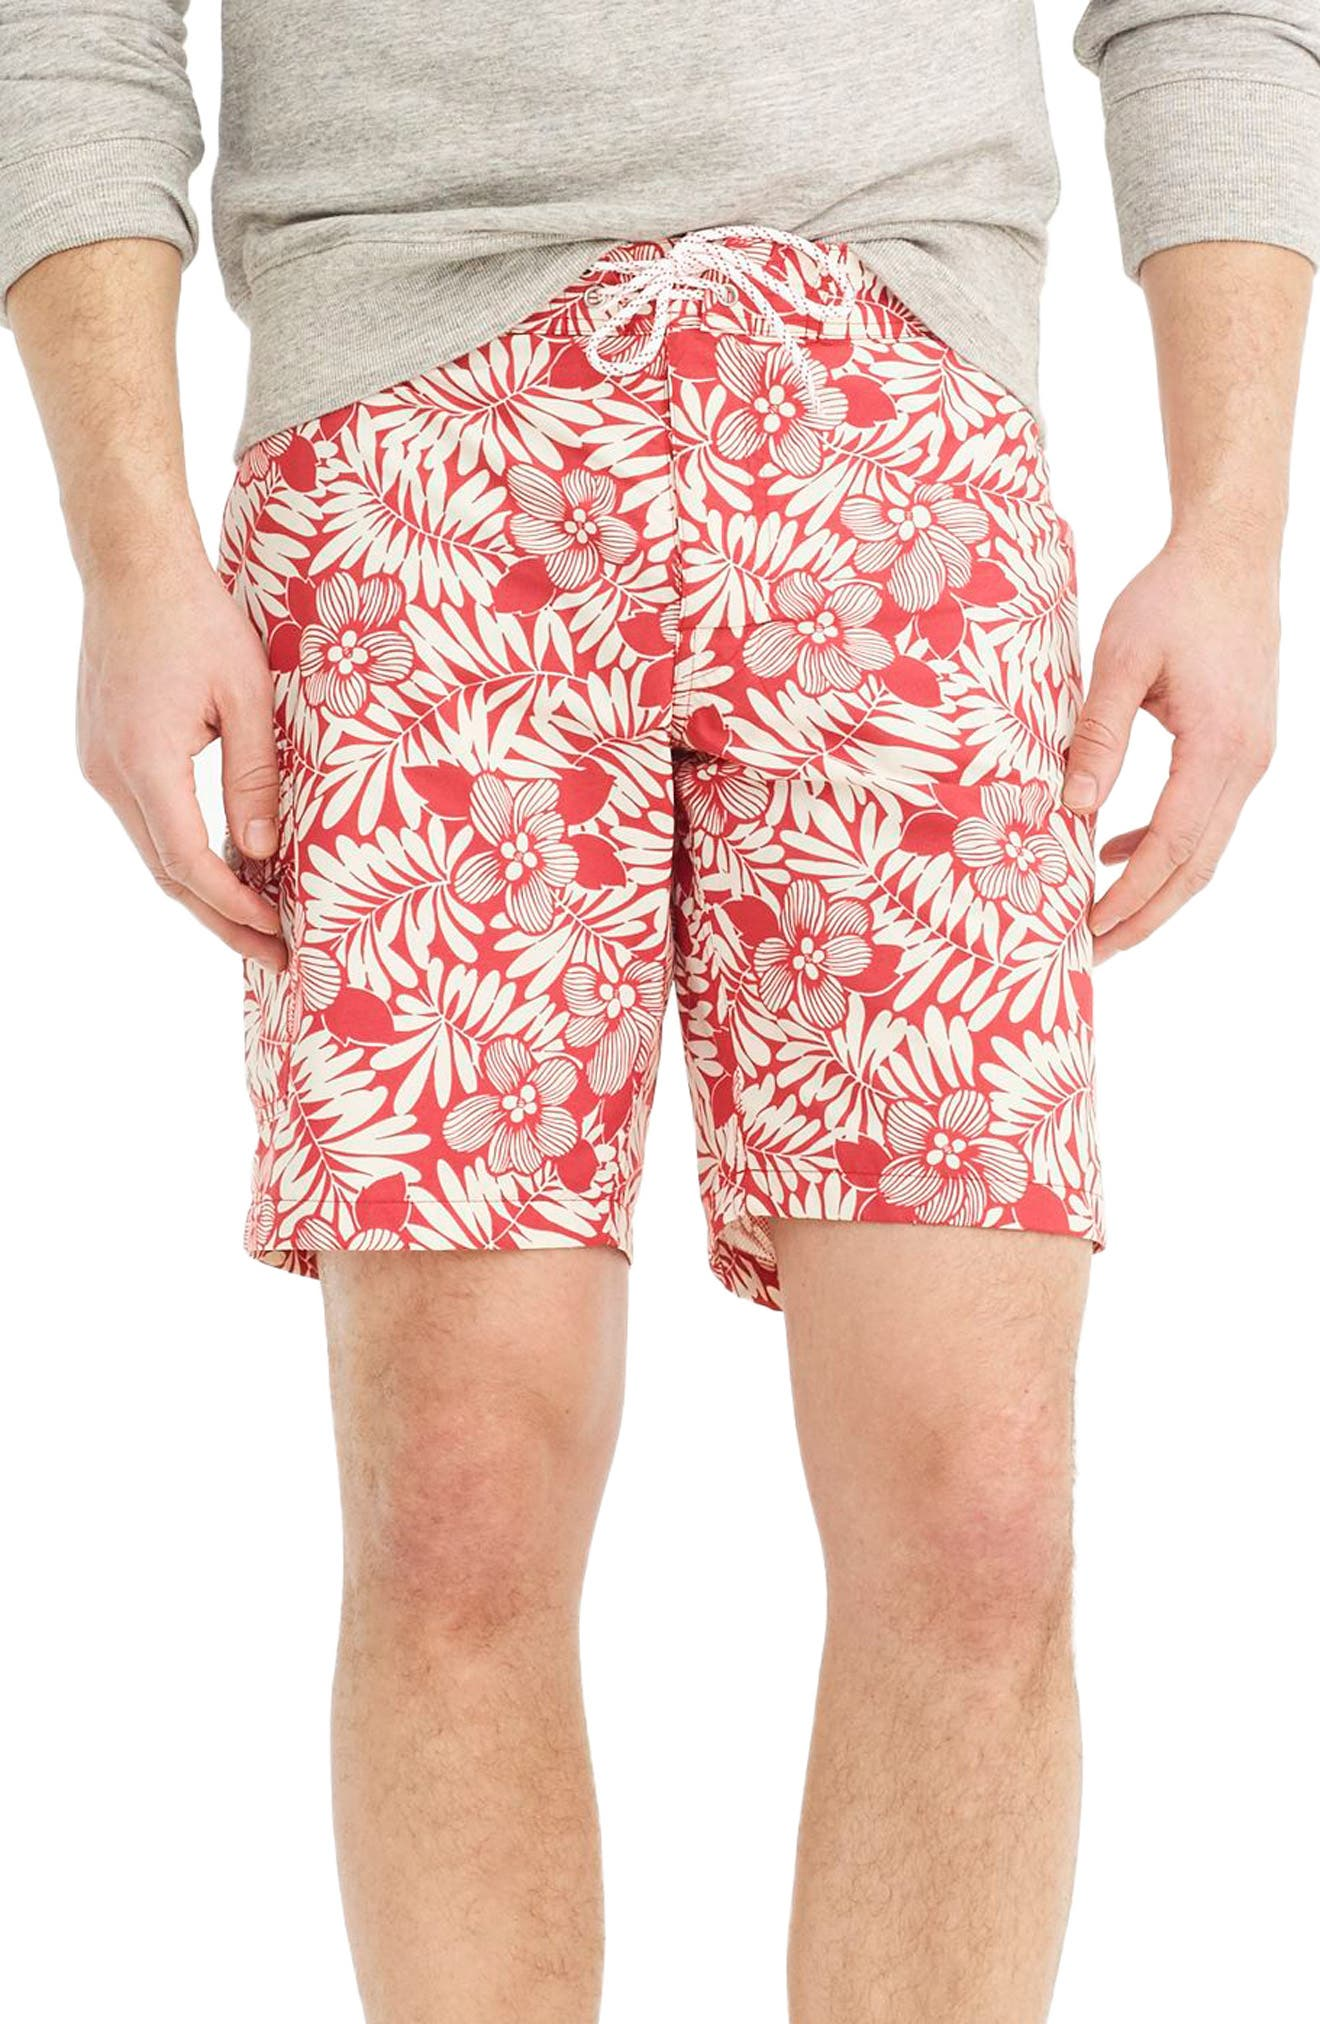 J.Crew Fern Print Board Shorts